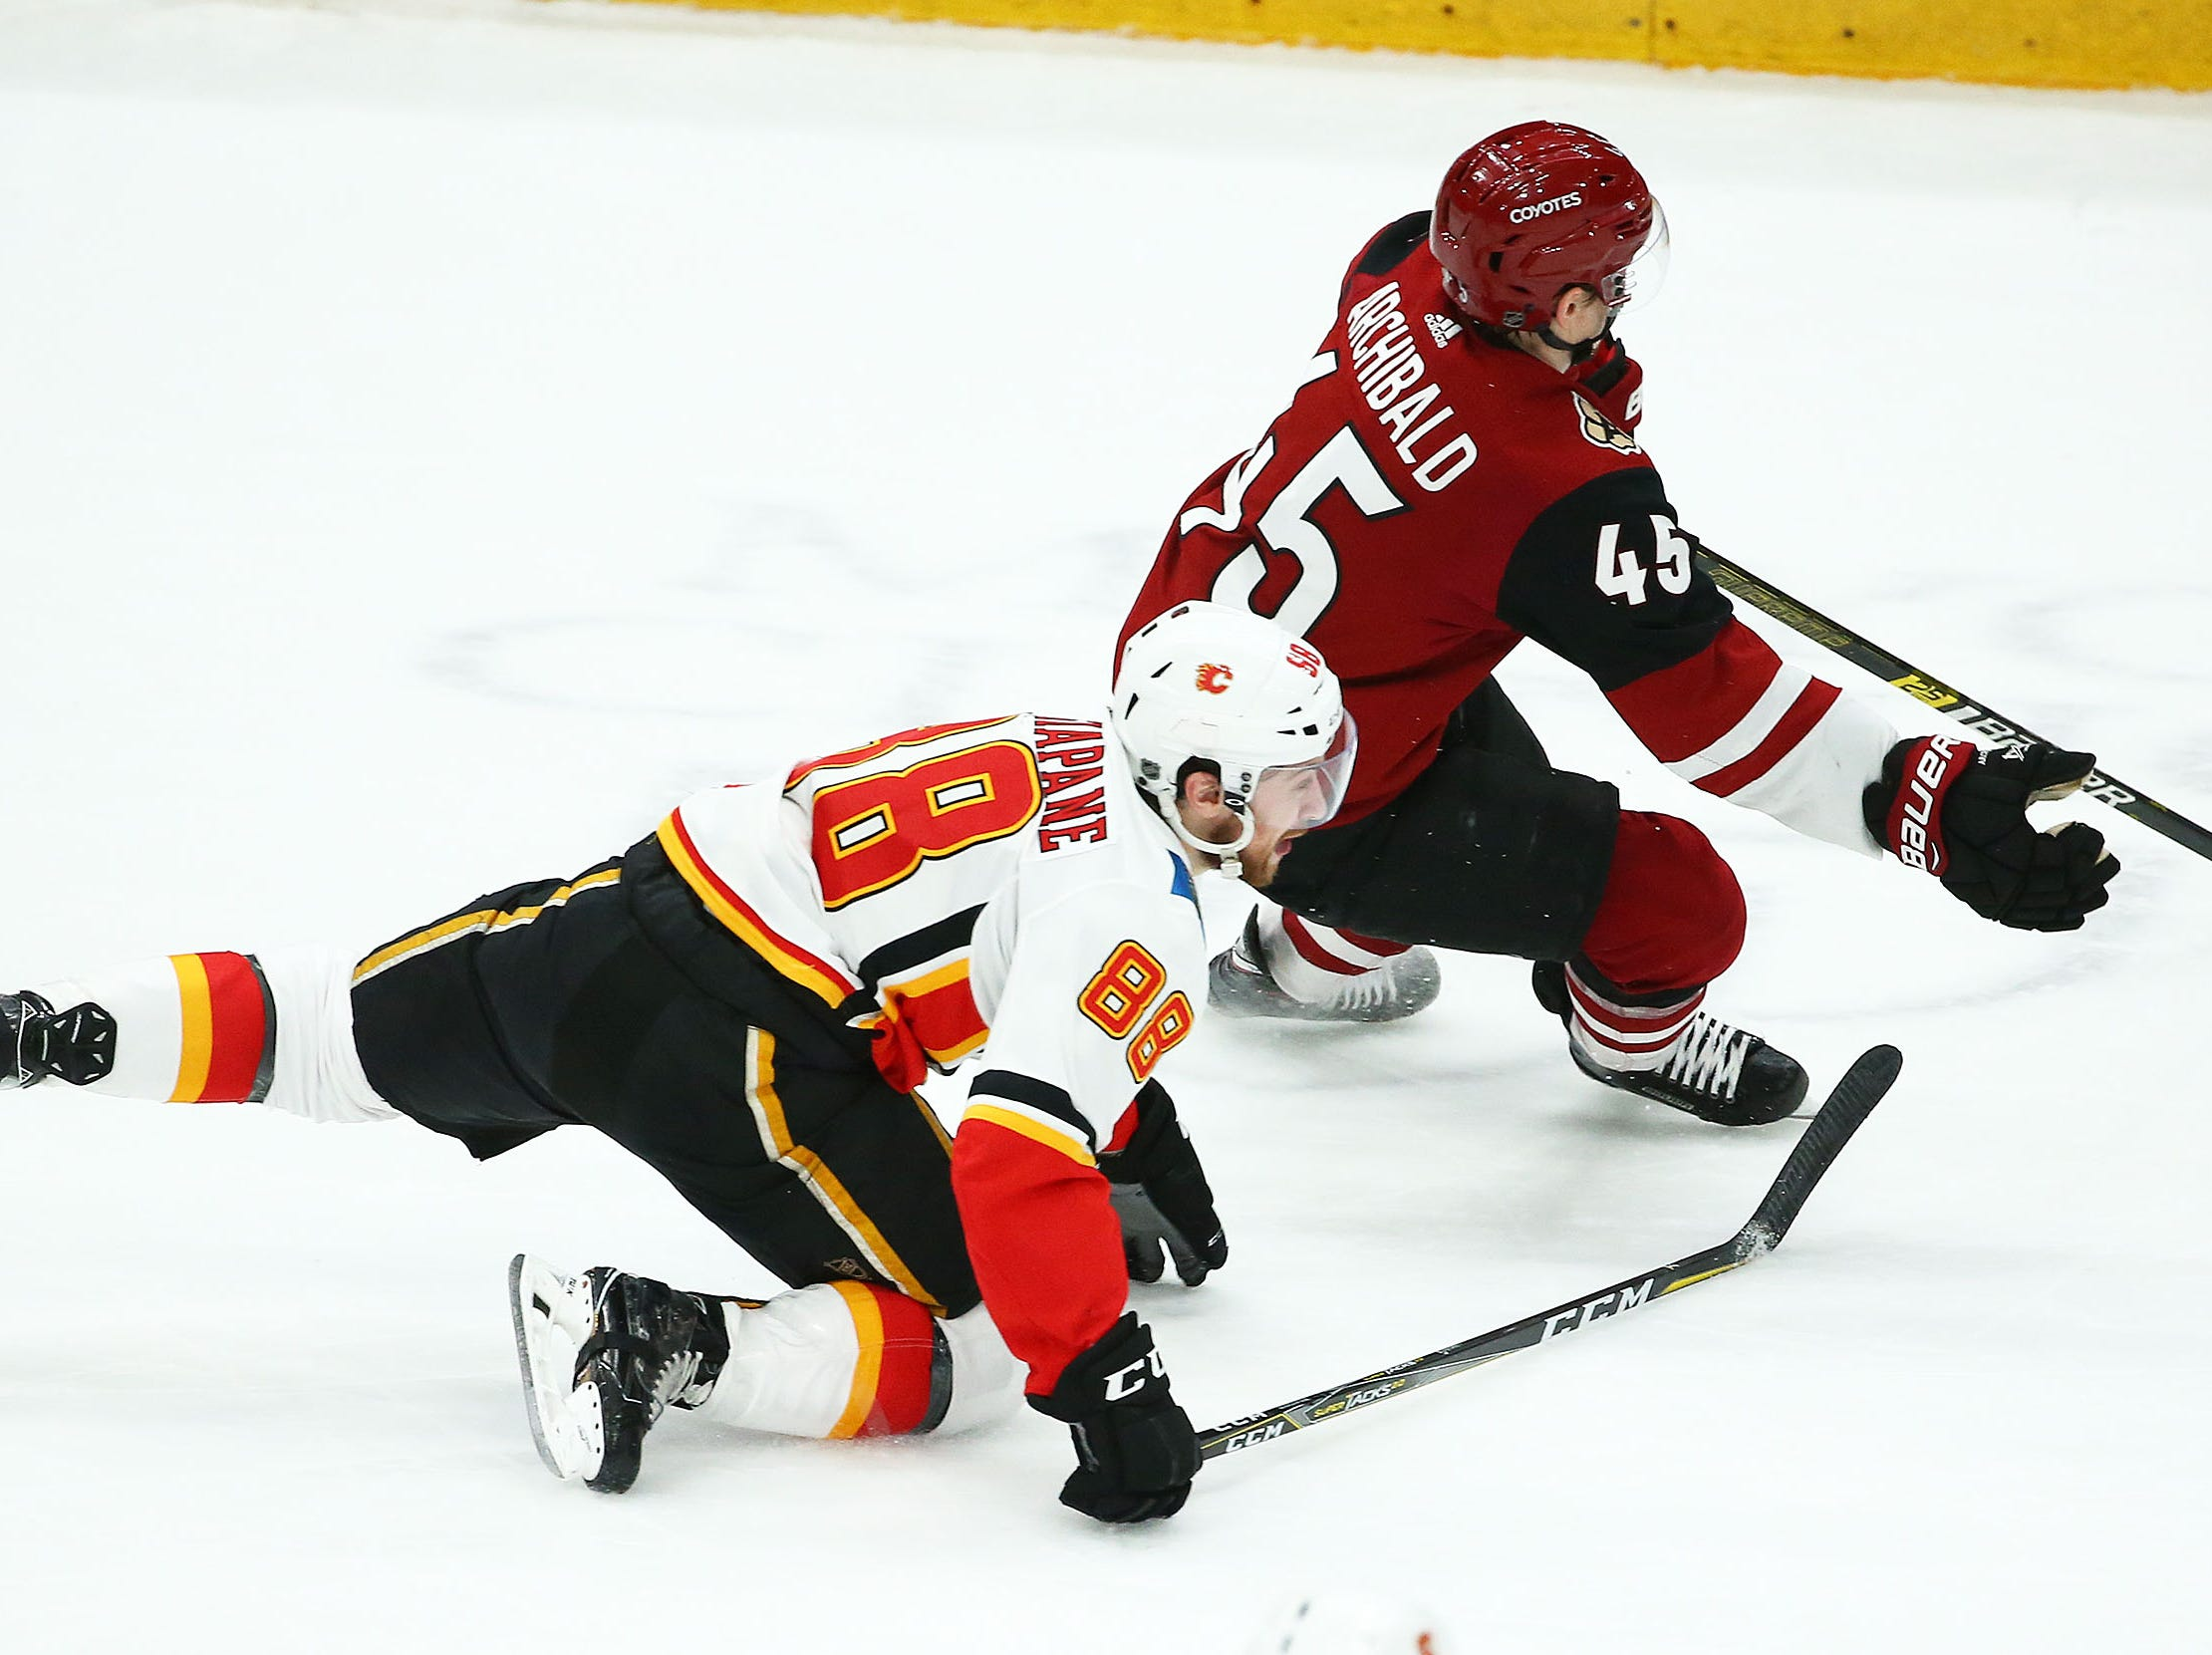 Calgary Flames left wing Andrew Mangiapane (88) battles for the puck with Arizona Coyotes right wing Josh Archibald (45) in the first period on Mar. 7, 2019, at Gila River Arena in Glendale, Ariz.